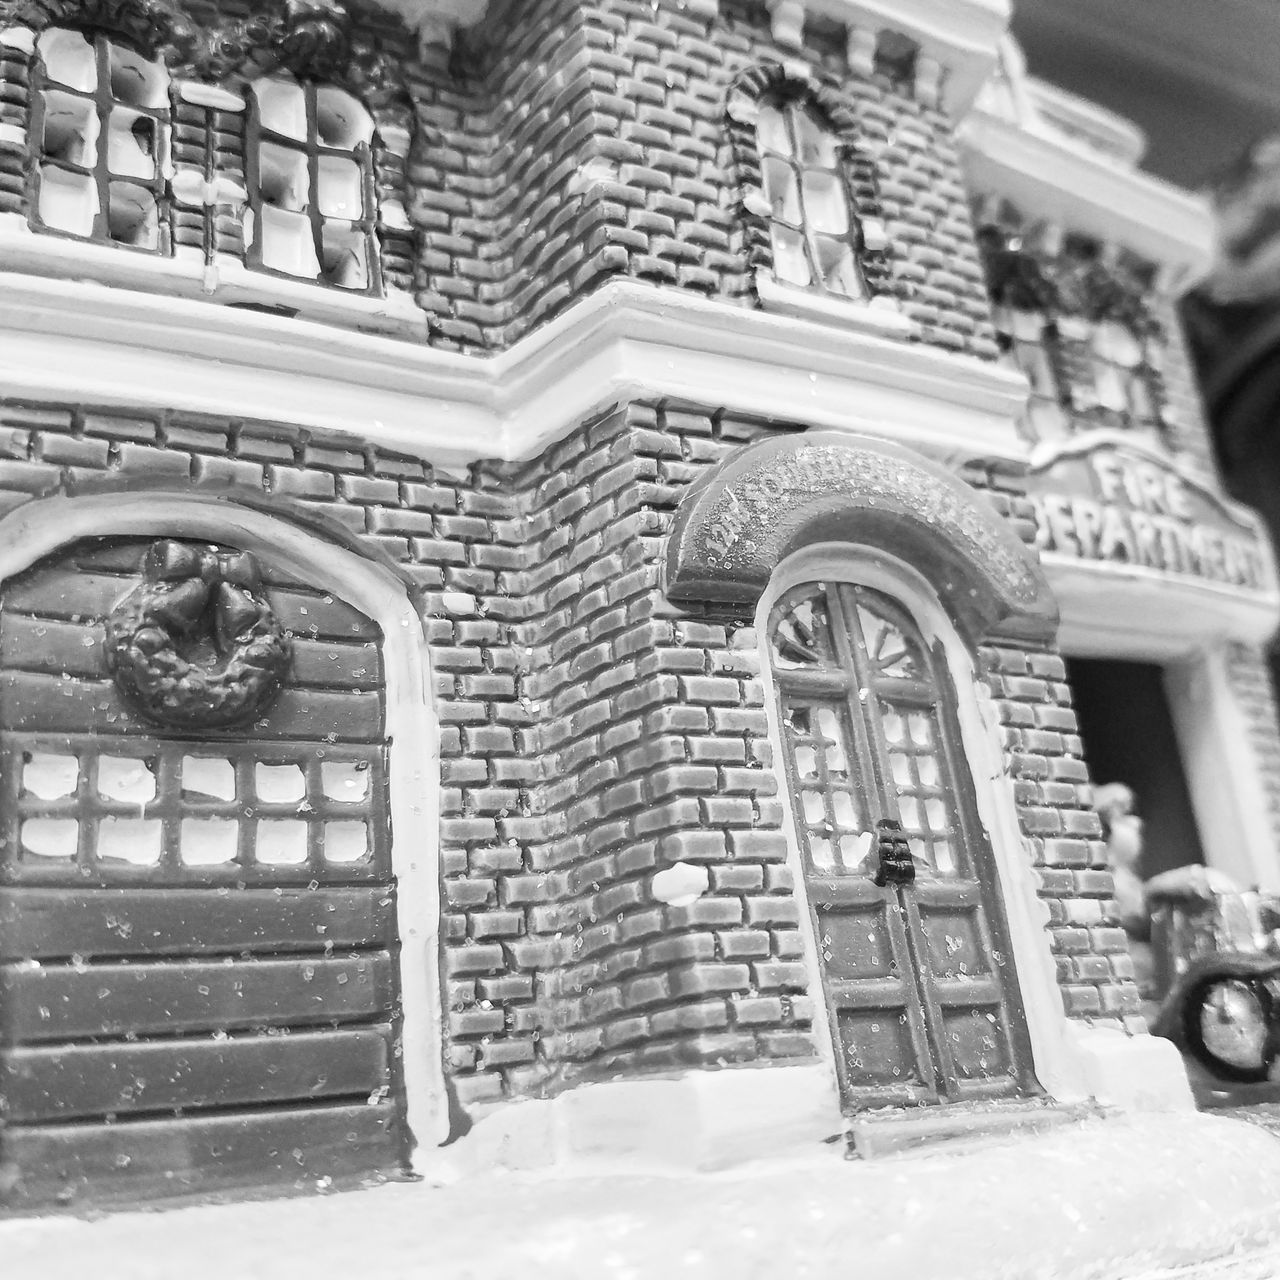 Toy House Small Tiny Tinyhouse Black And White Glass Walmart Photoshoot Photography Photo Photooftheday PhonePhotography Photo Of The Day First Eyeem Photo